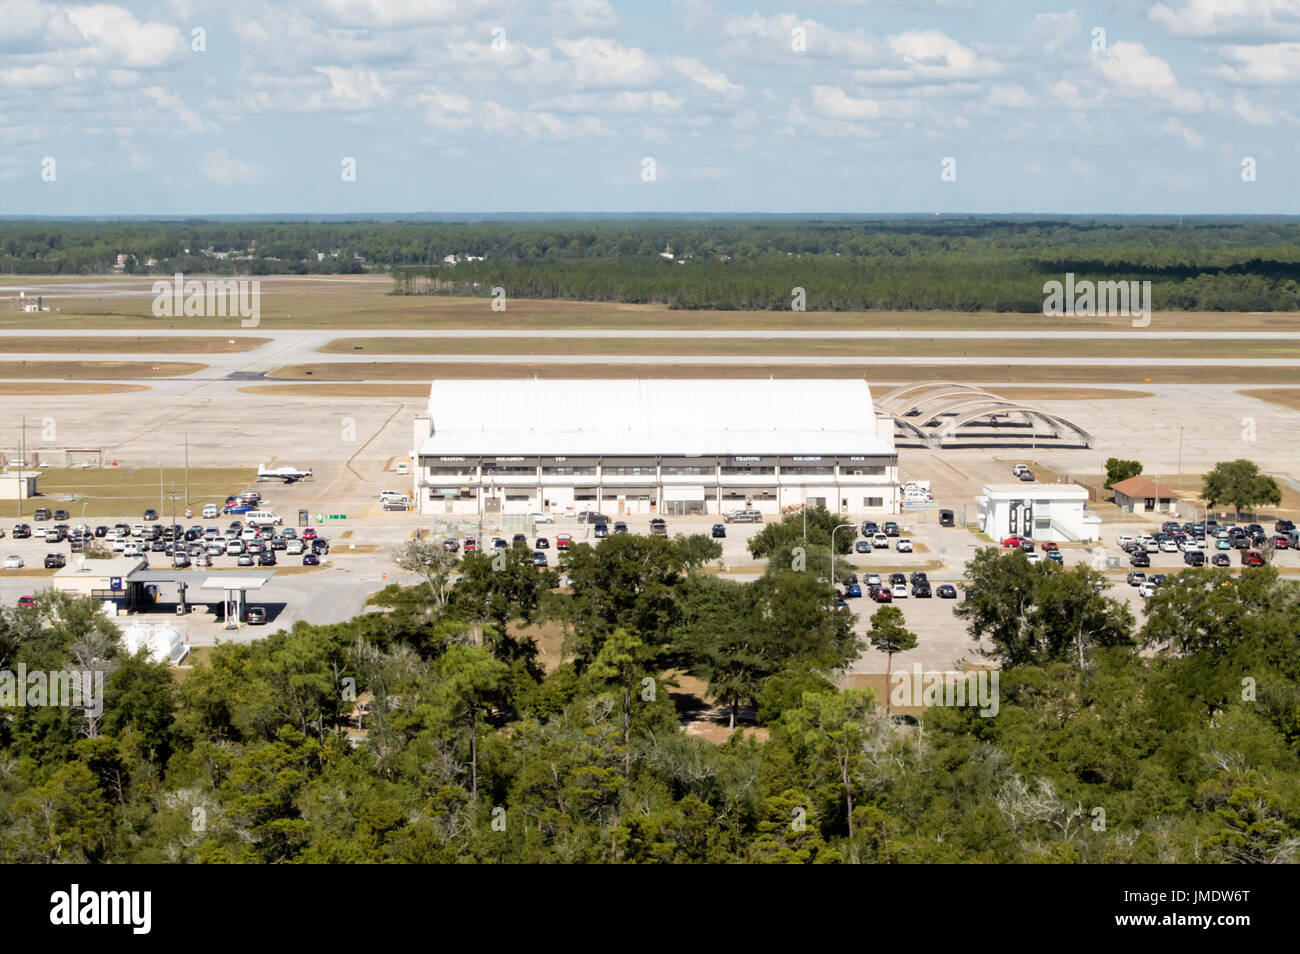 An overhead overlook of  military air base and hangars in Pensacola Florida. - Stock Image